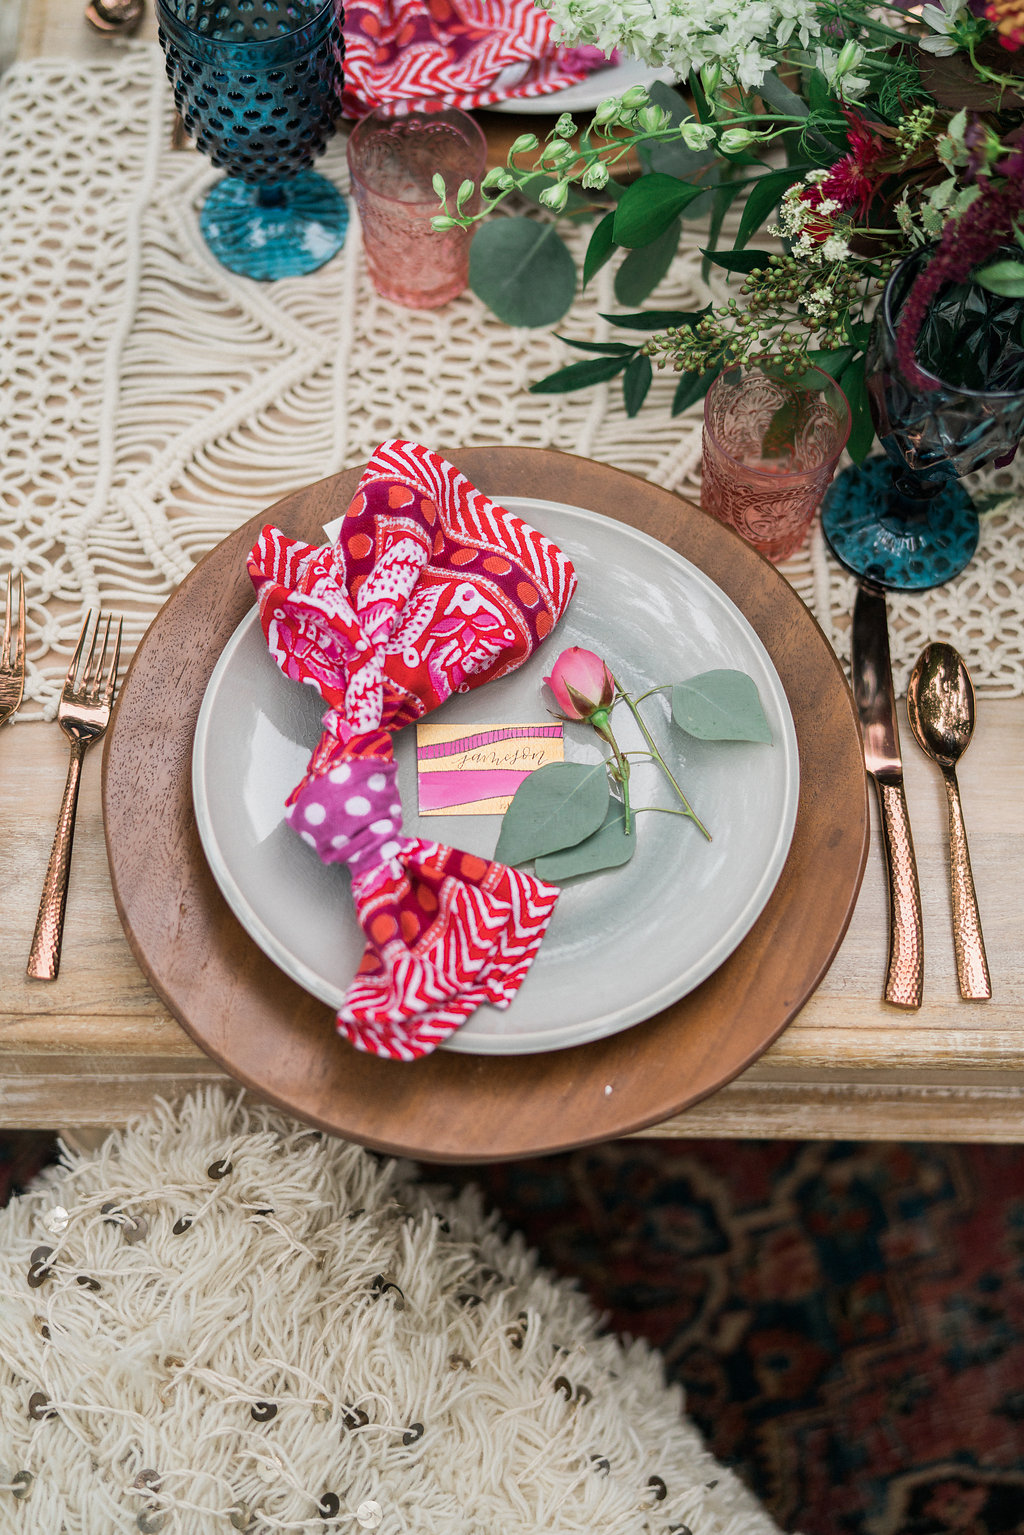 colorful place setting - http://ruffledblog.com/nomadic-cliffside-elopement-inspiration